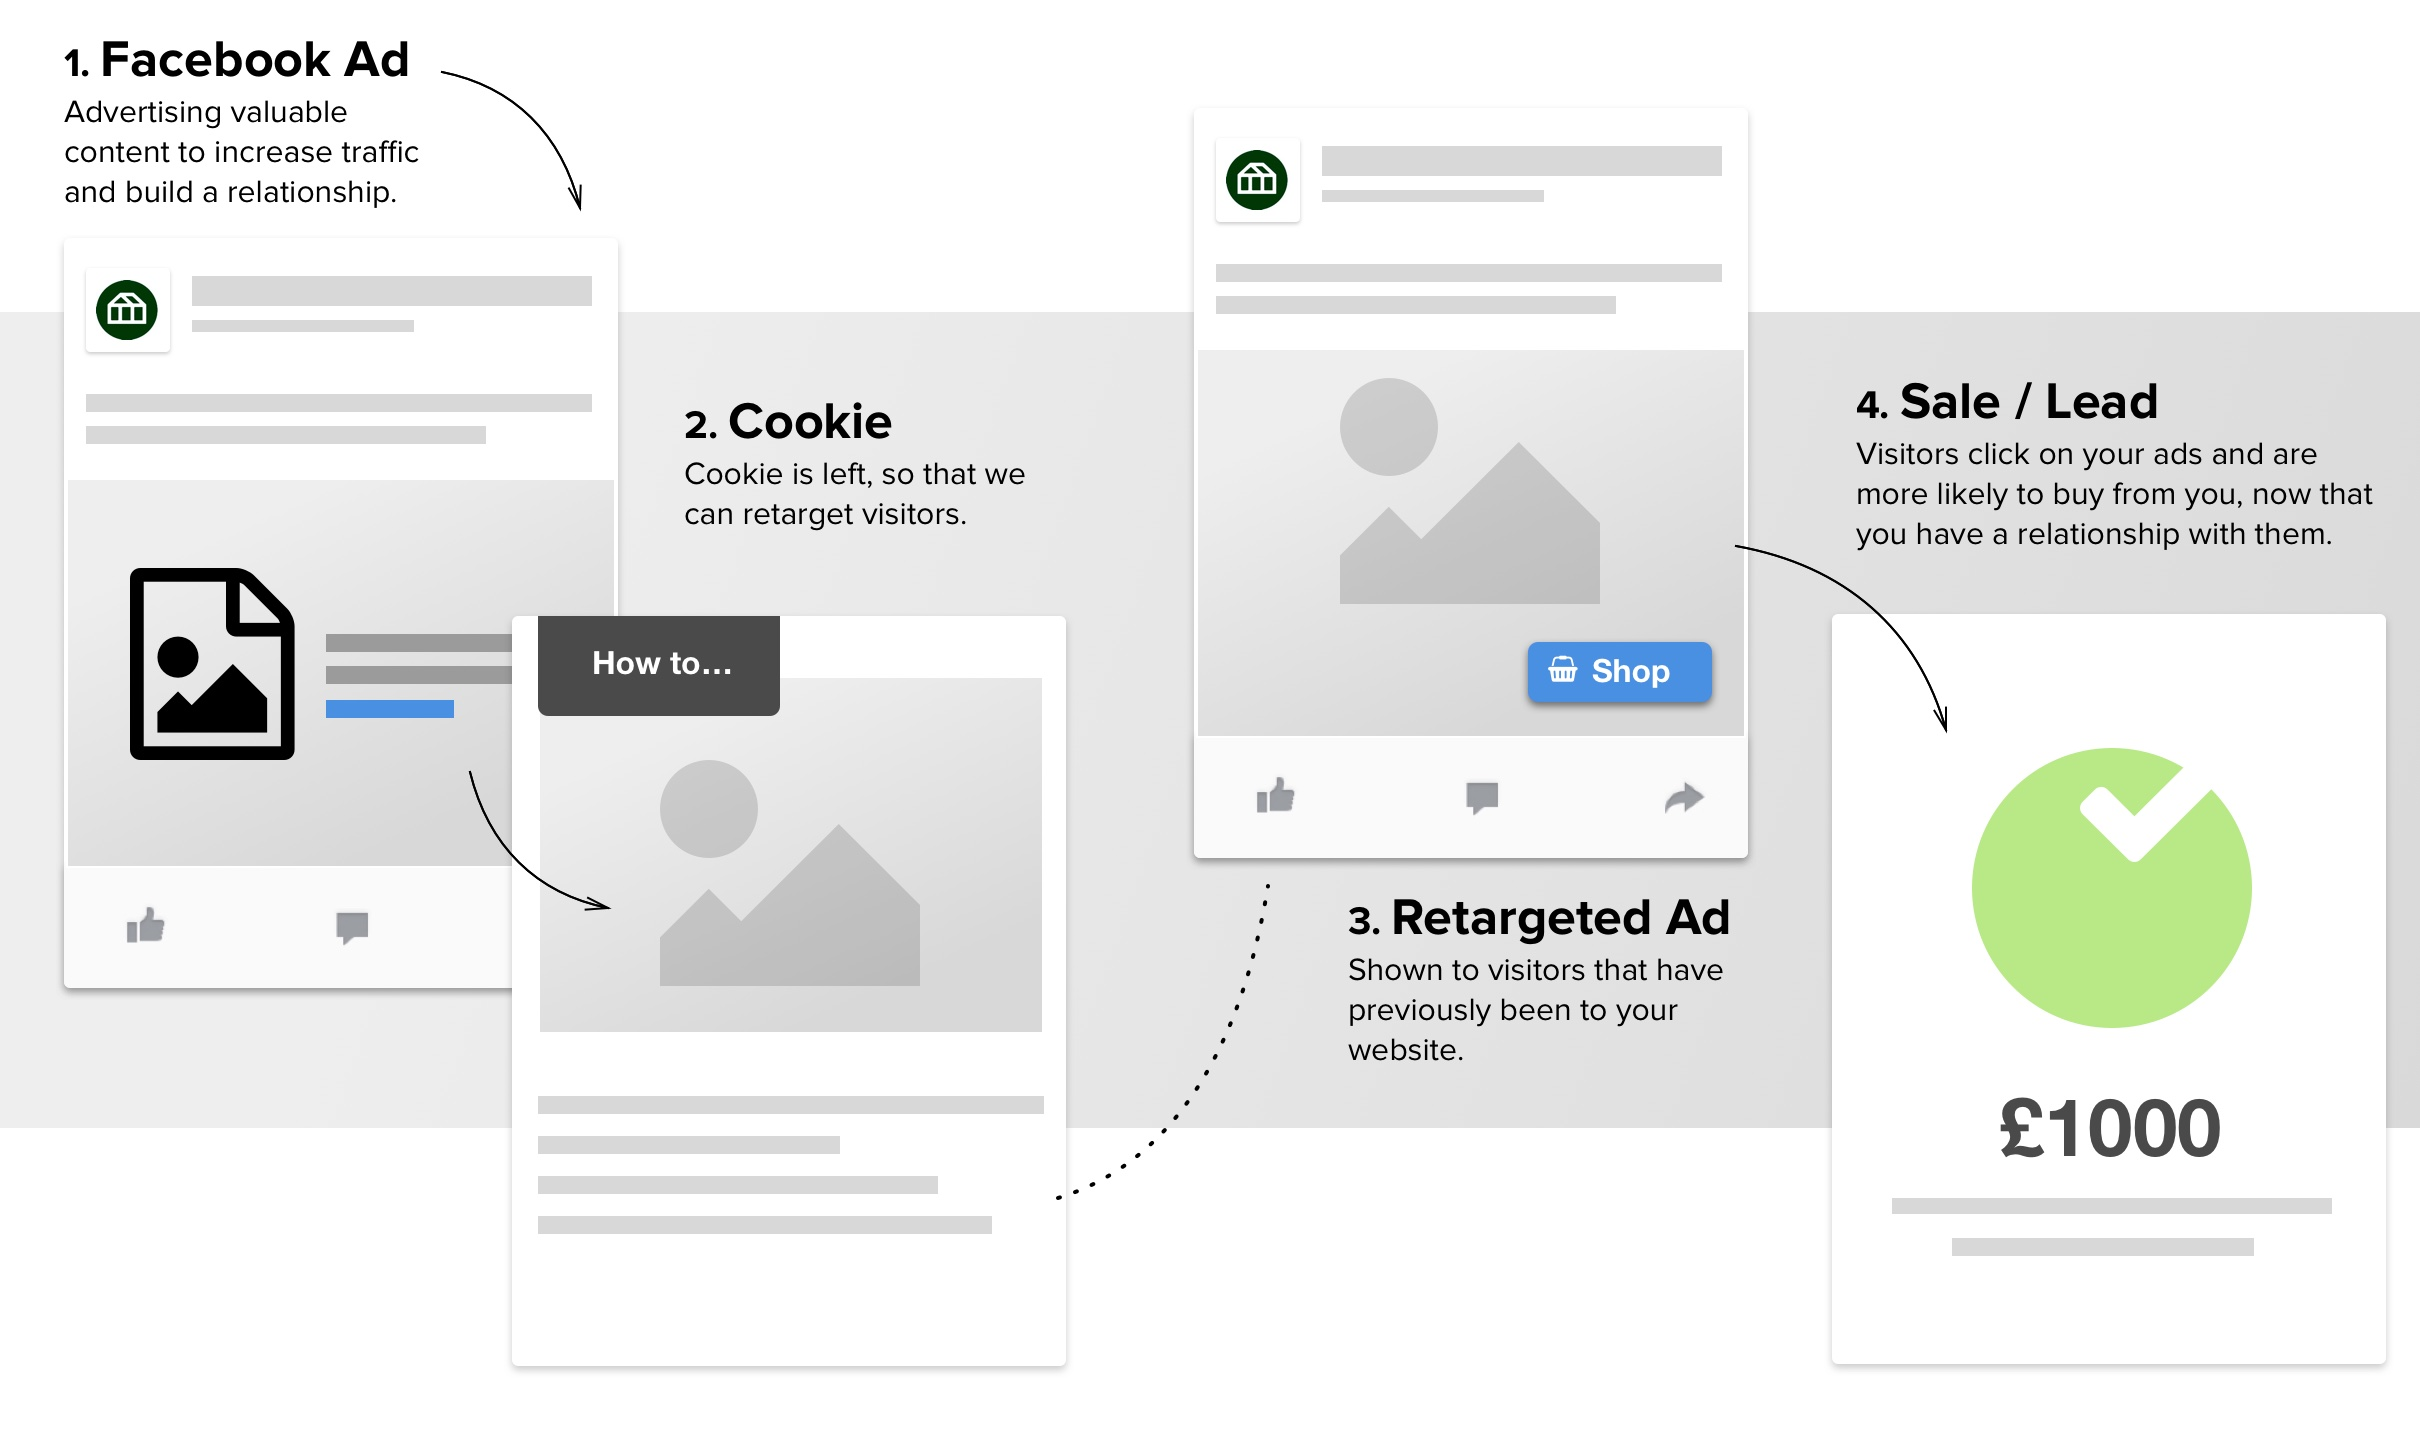 Remarketing and retargeting explained